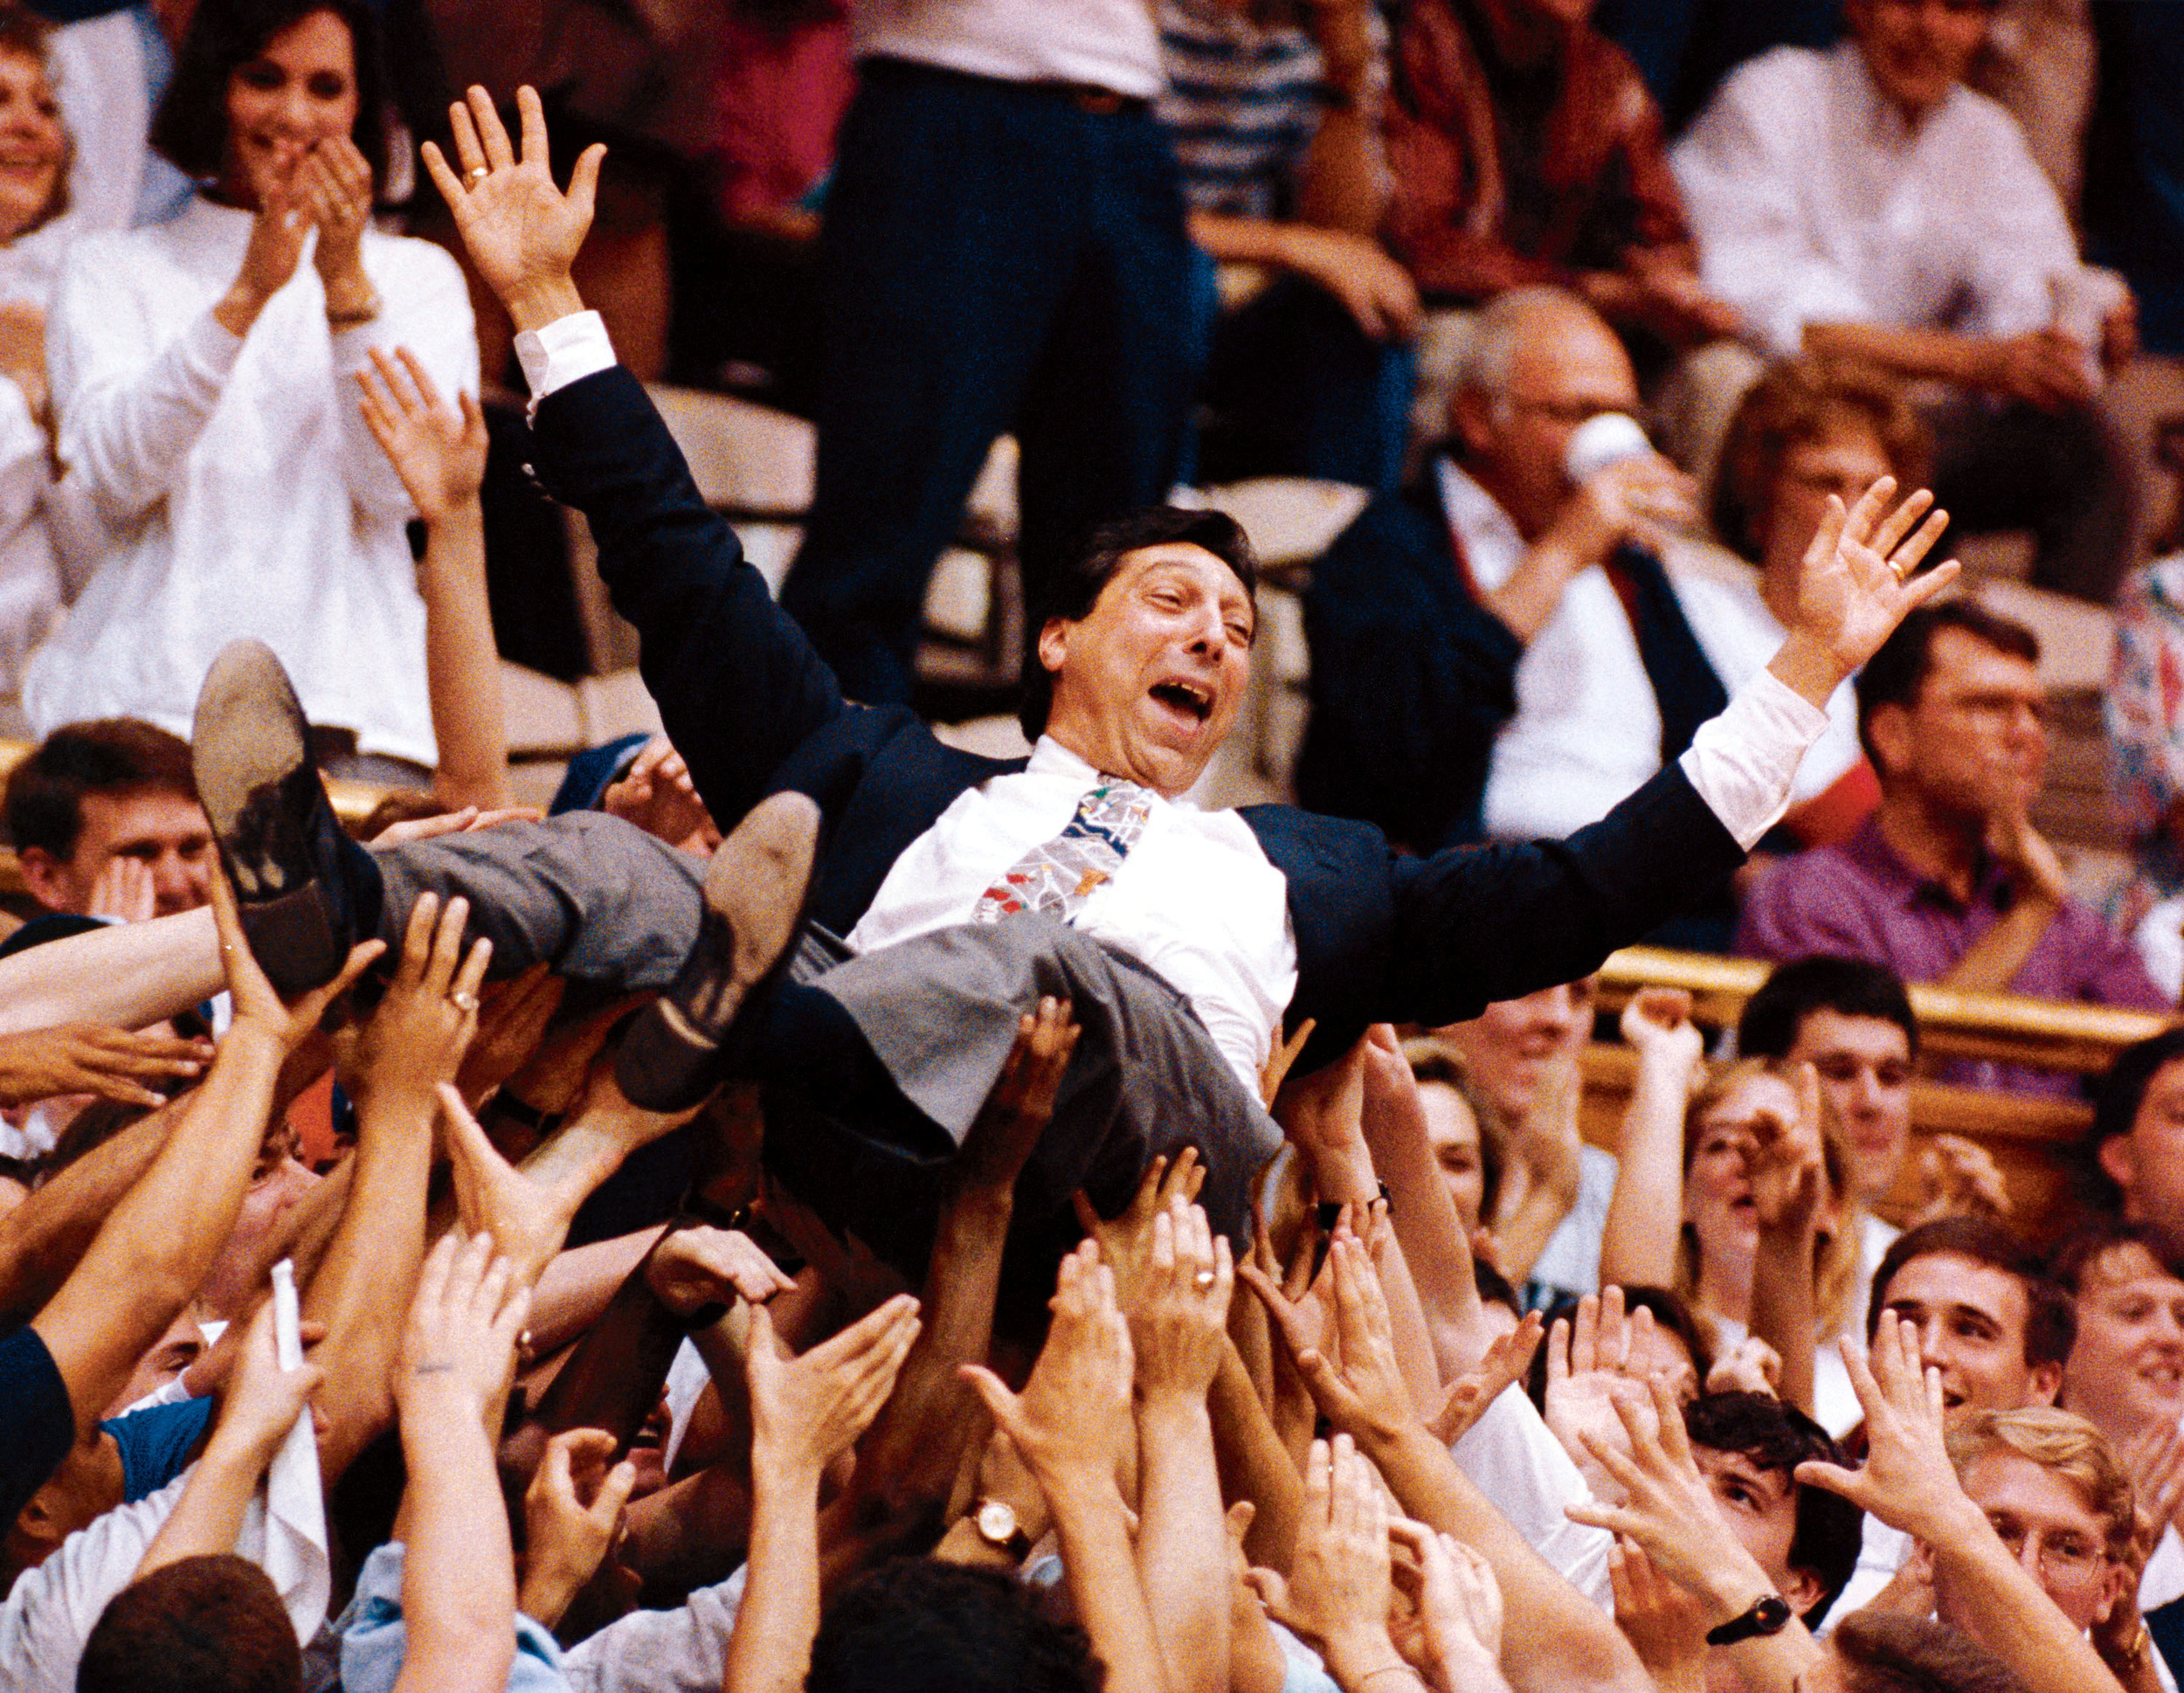 Valvano crowdsurfs while announcing a game in the early 1990s.